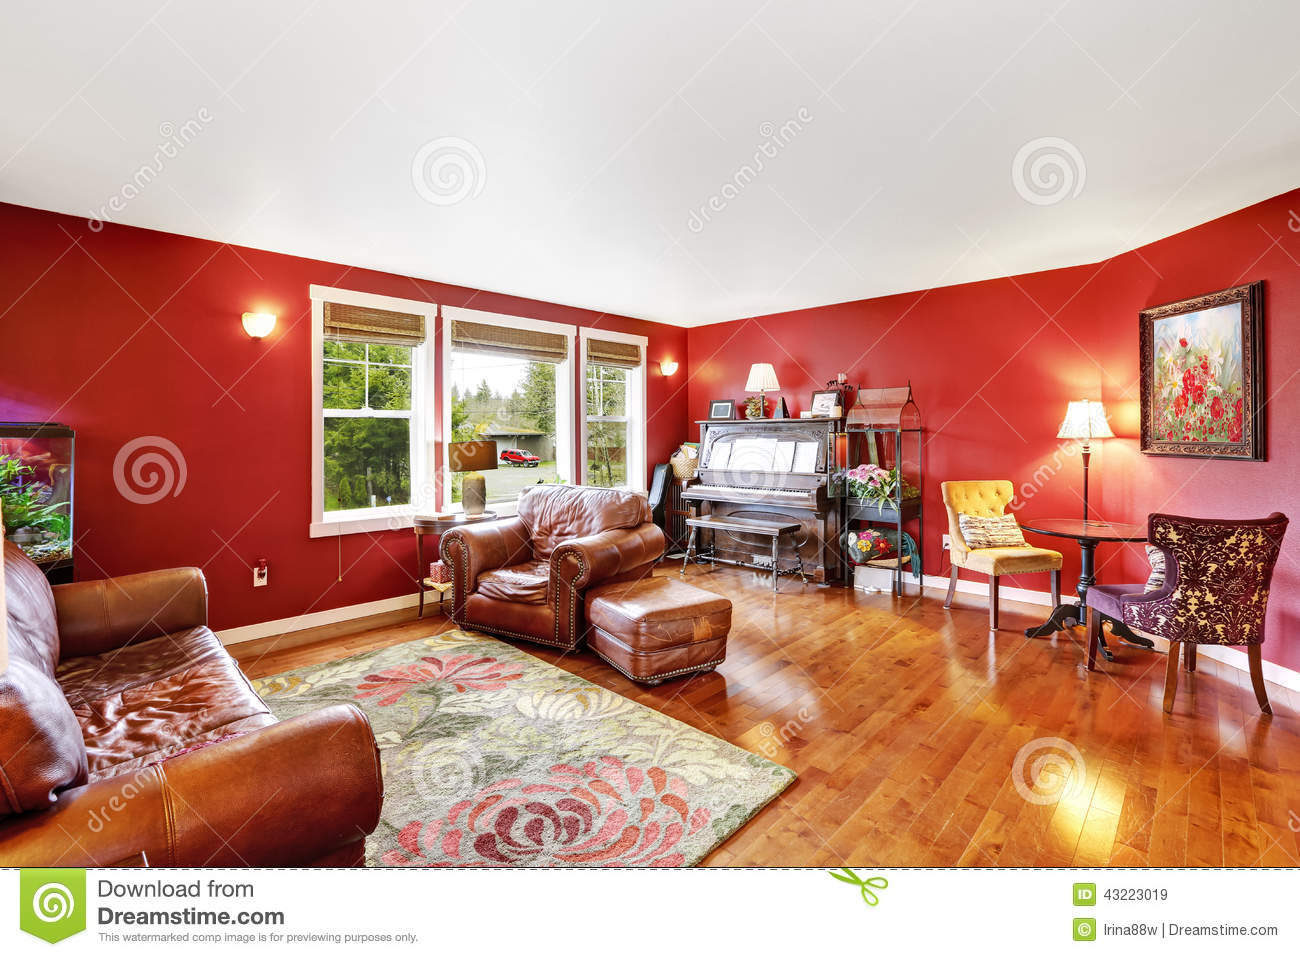 Brown and red living room - Bright Red Living Room Interior Royalty Free Stock Images